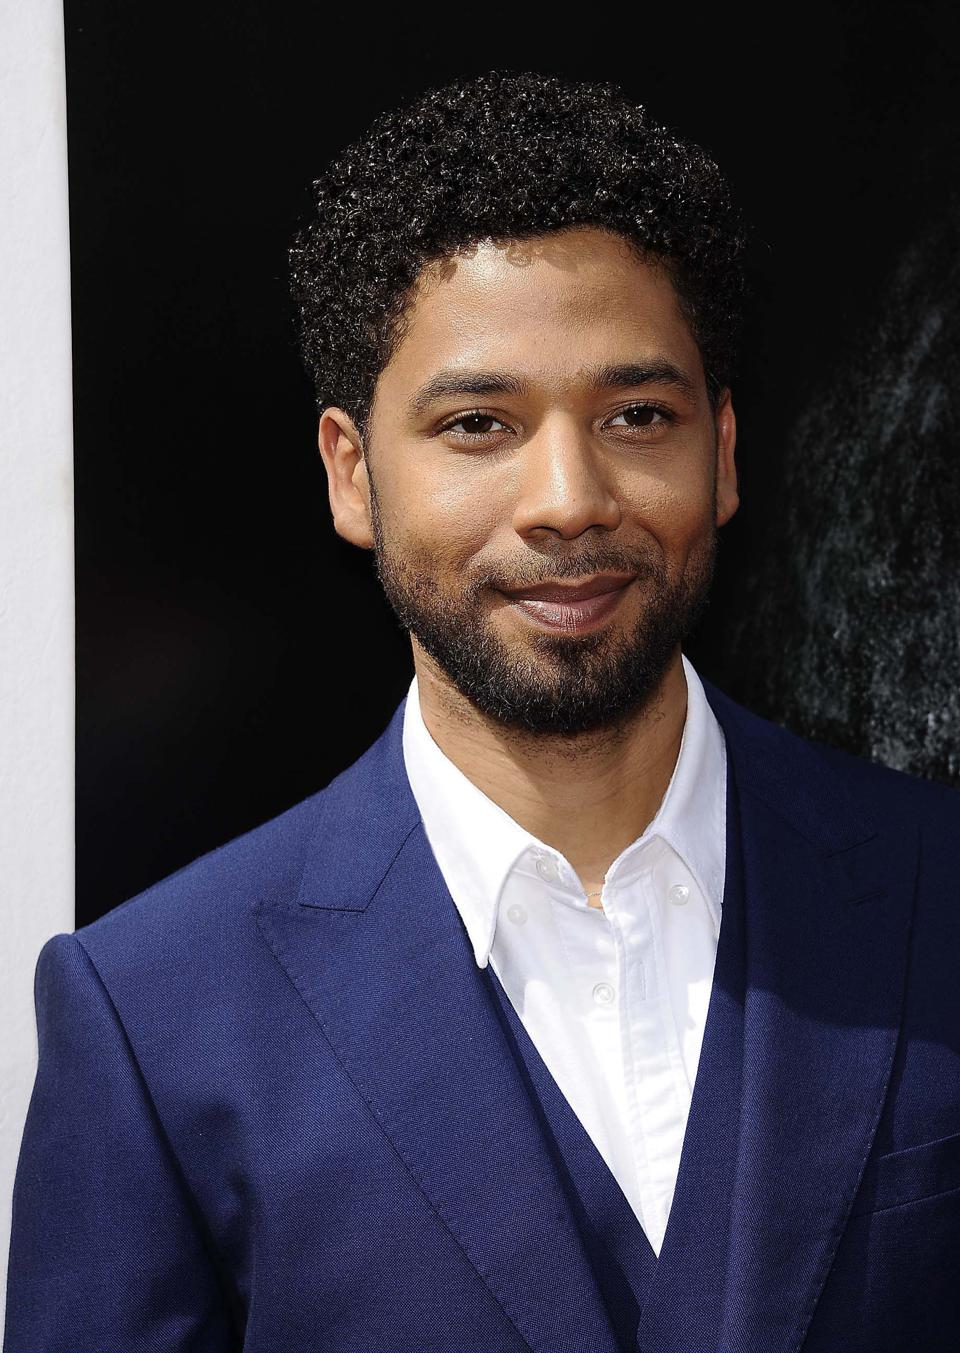 What To Do In A Crisis: Learning From The Jussie Smollett Situation